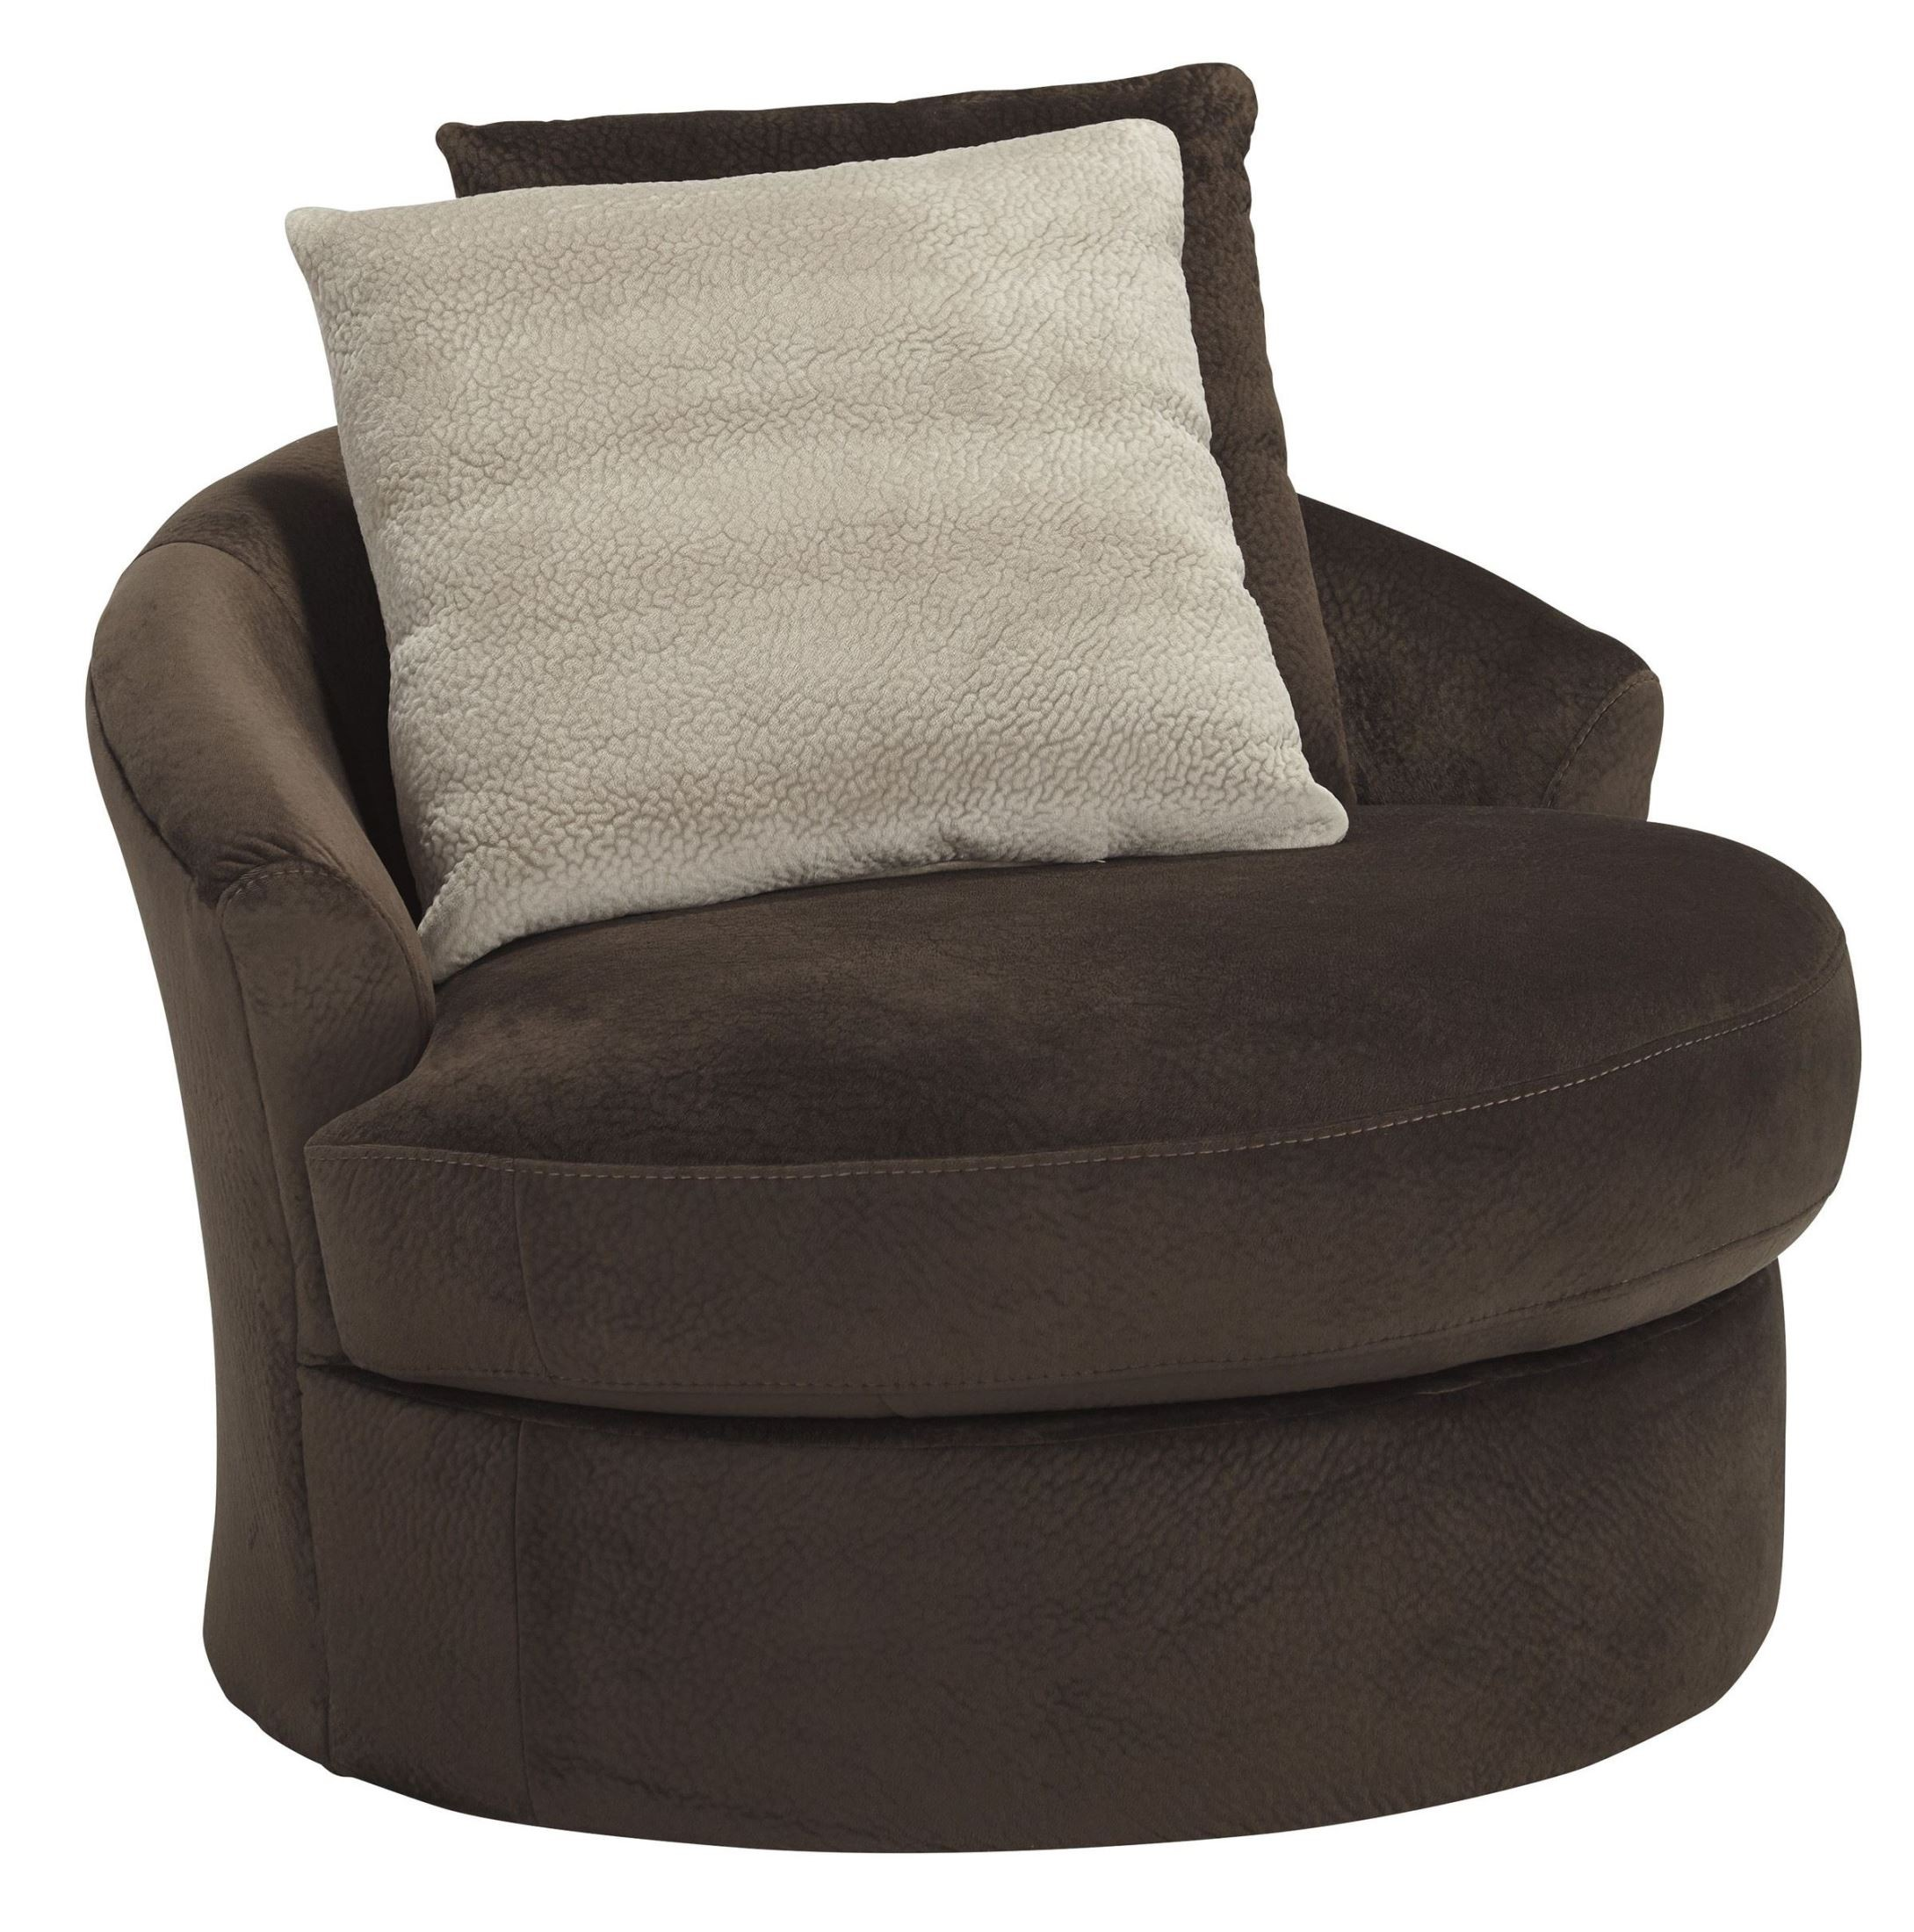 accent swivel chairs outdoor wicker rocking chair cushions dahlen chocolate from ashley 8830244